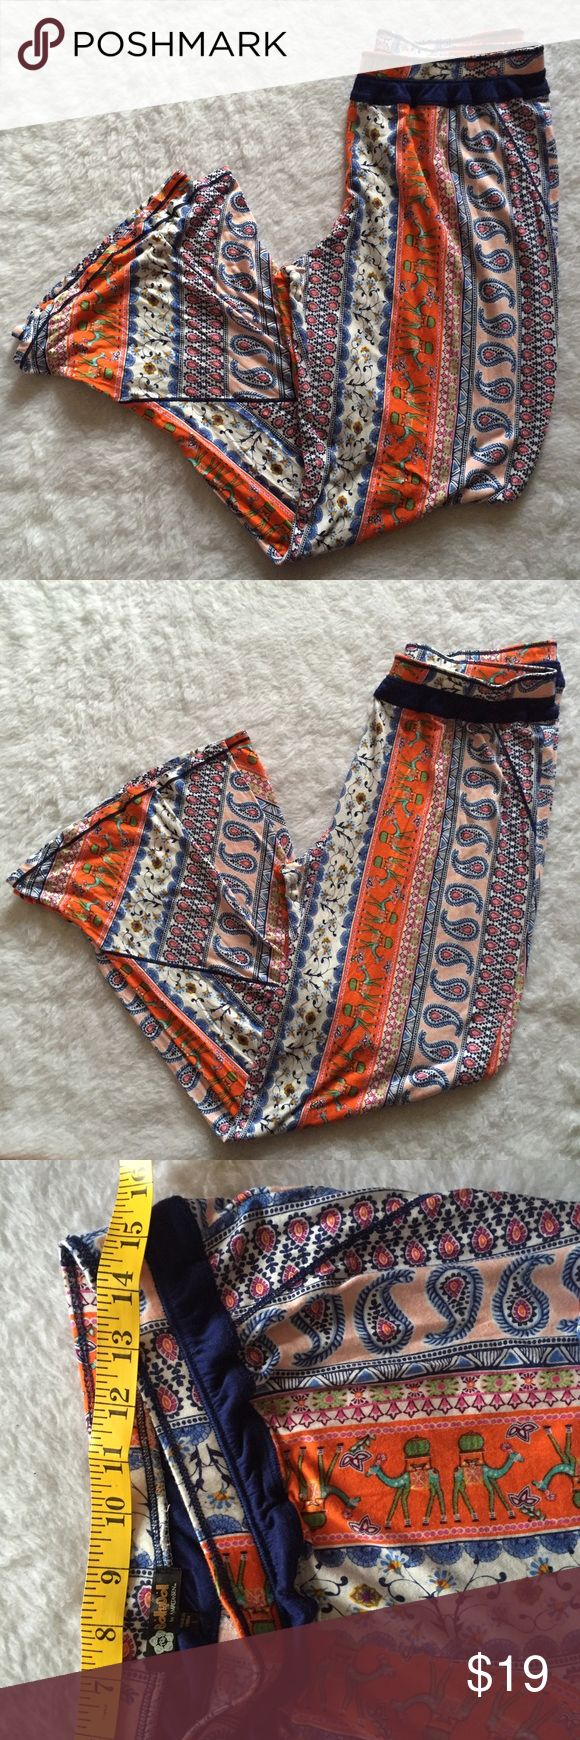 Bolly doll Amrita Sen large paisley palazzo pants Excellent condition very nice colors, perfect for lounging or at the beach Pants